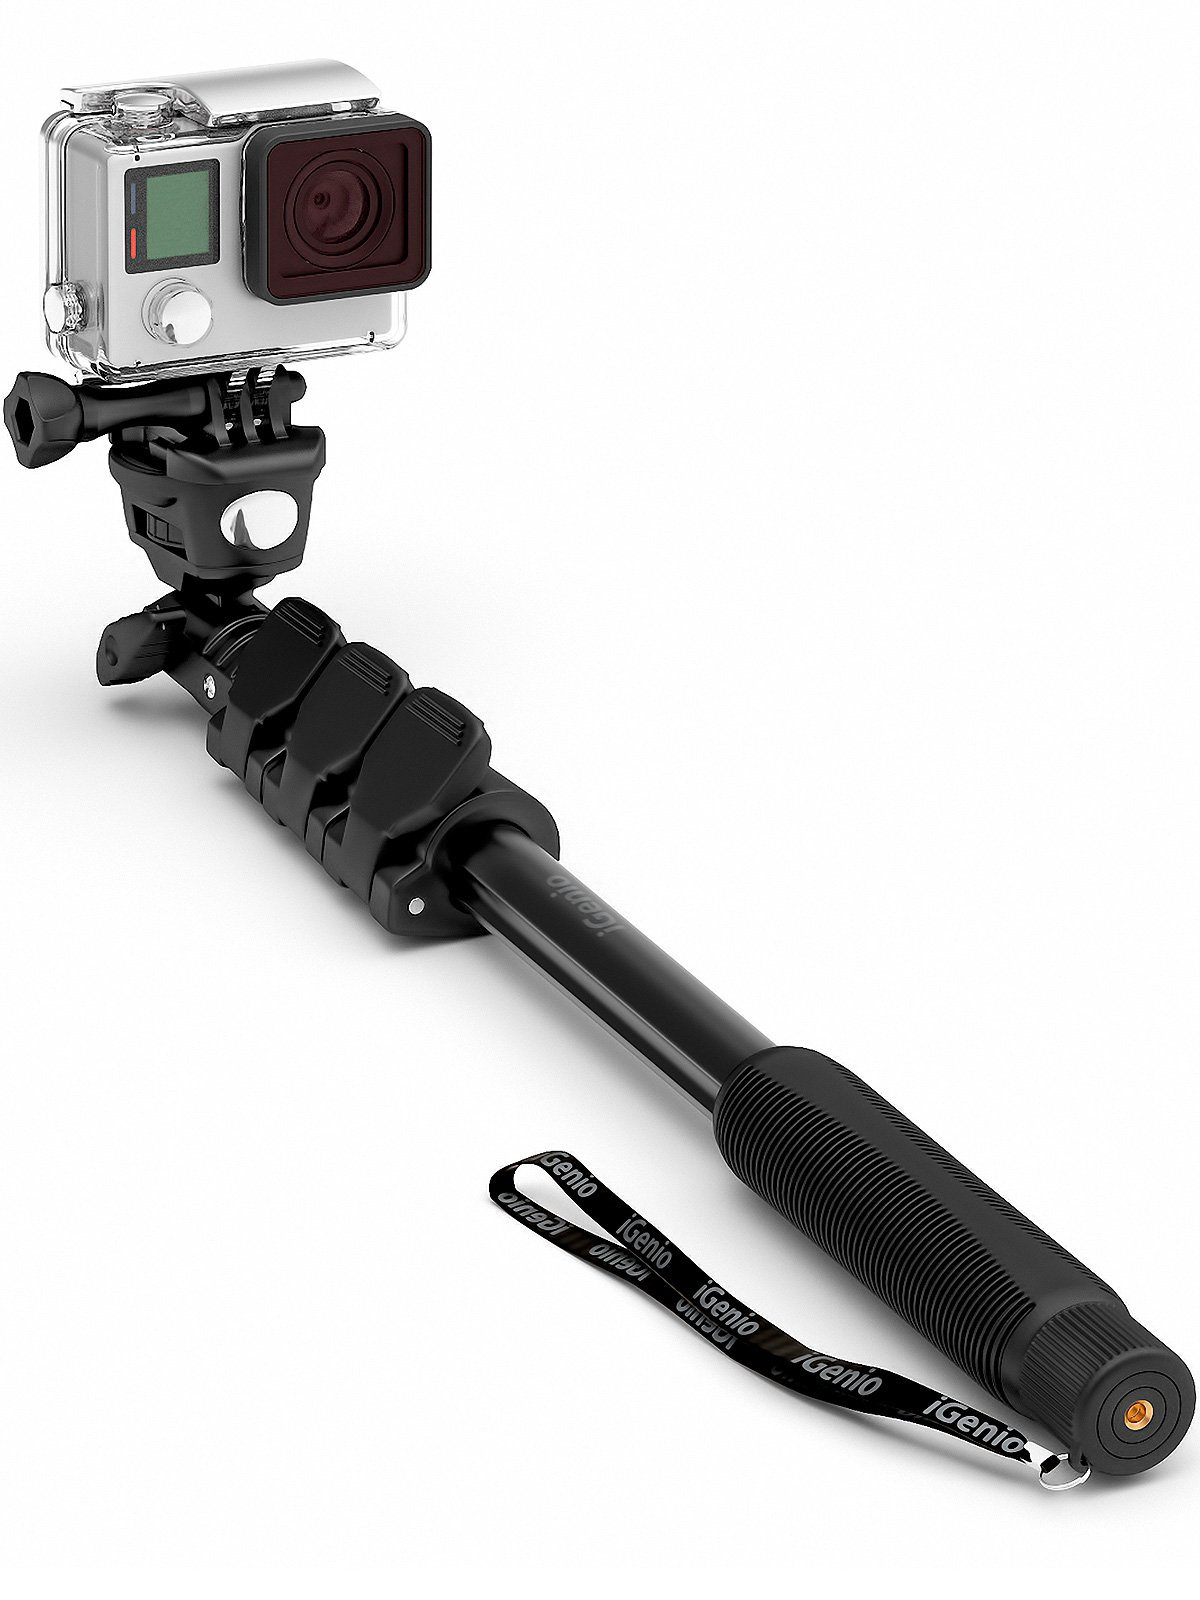 "Professional 10-In-1 GoPro Monopod, 15""- 47"" Waterproof Selfie Stick For Go Pro Hero, Action Cameras, Smartphones, Digital Compacts (Black)"